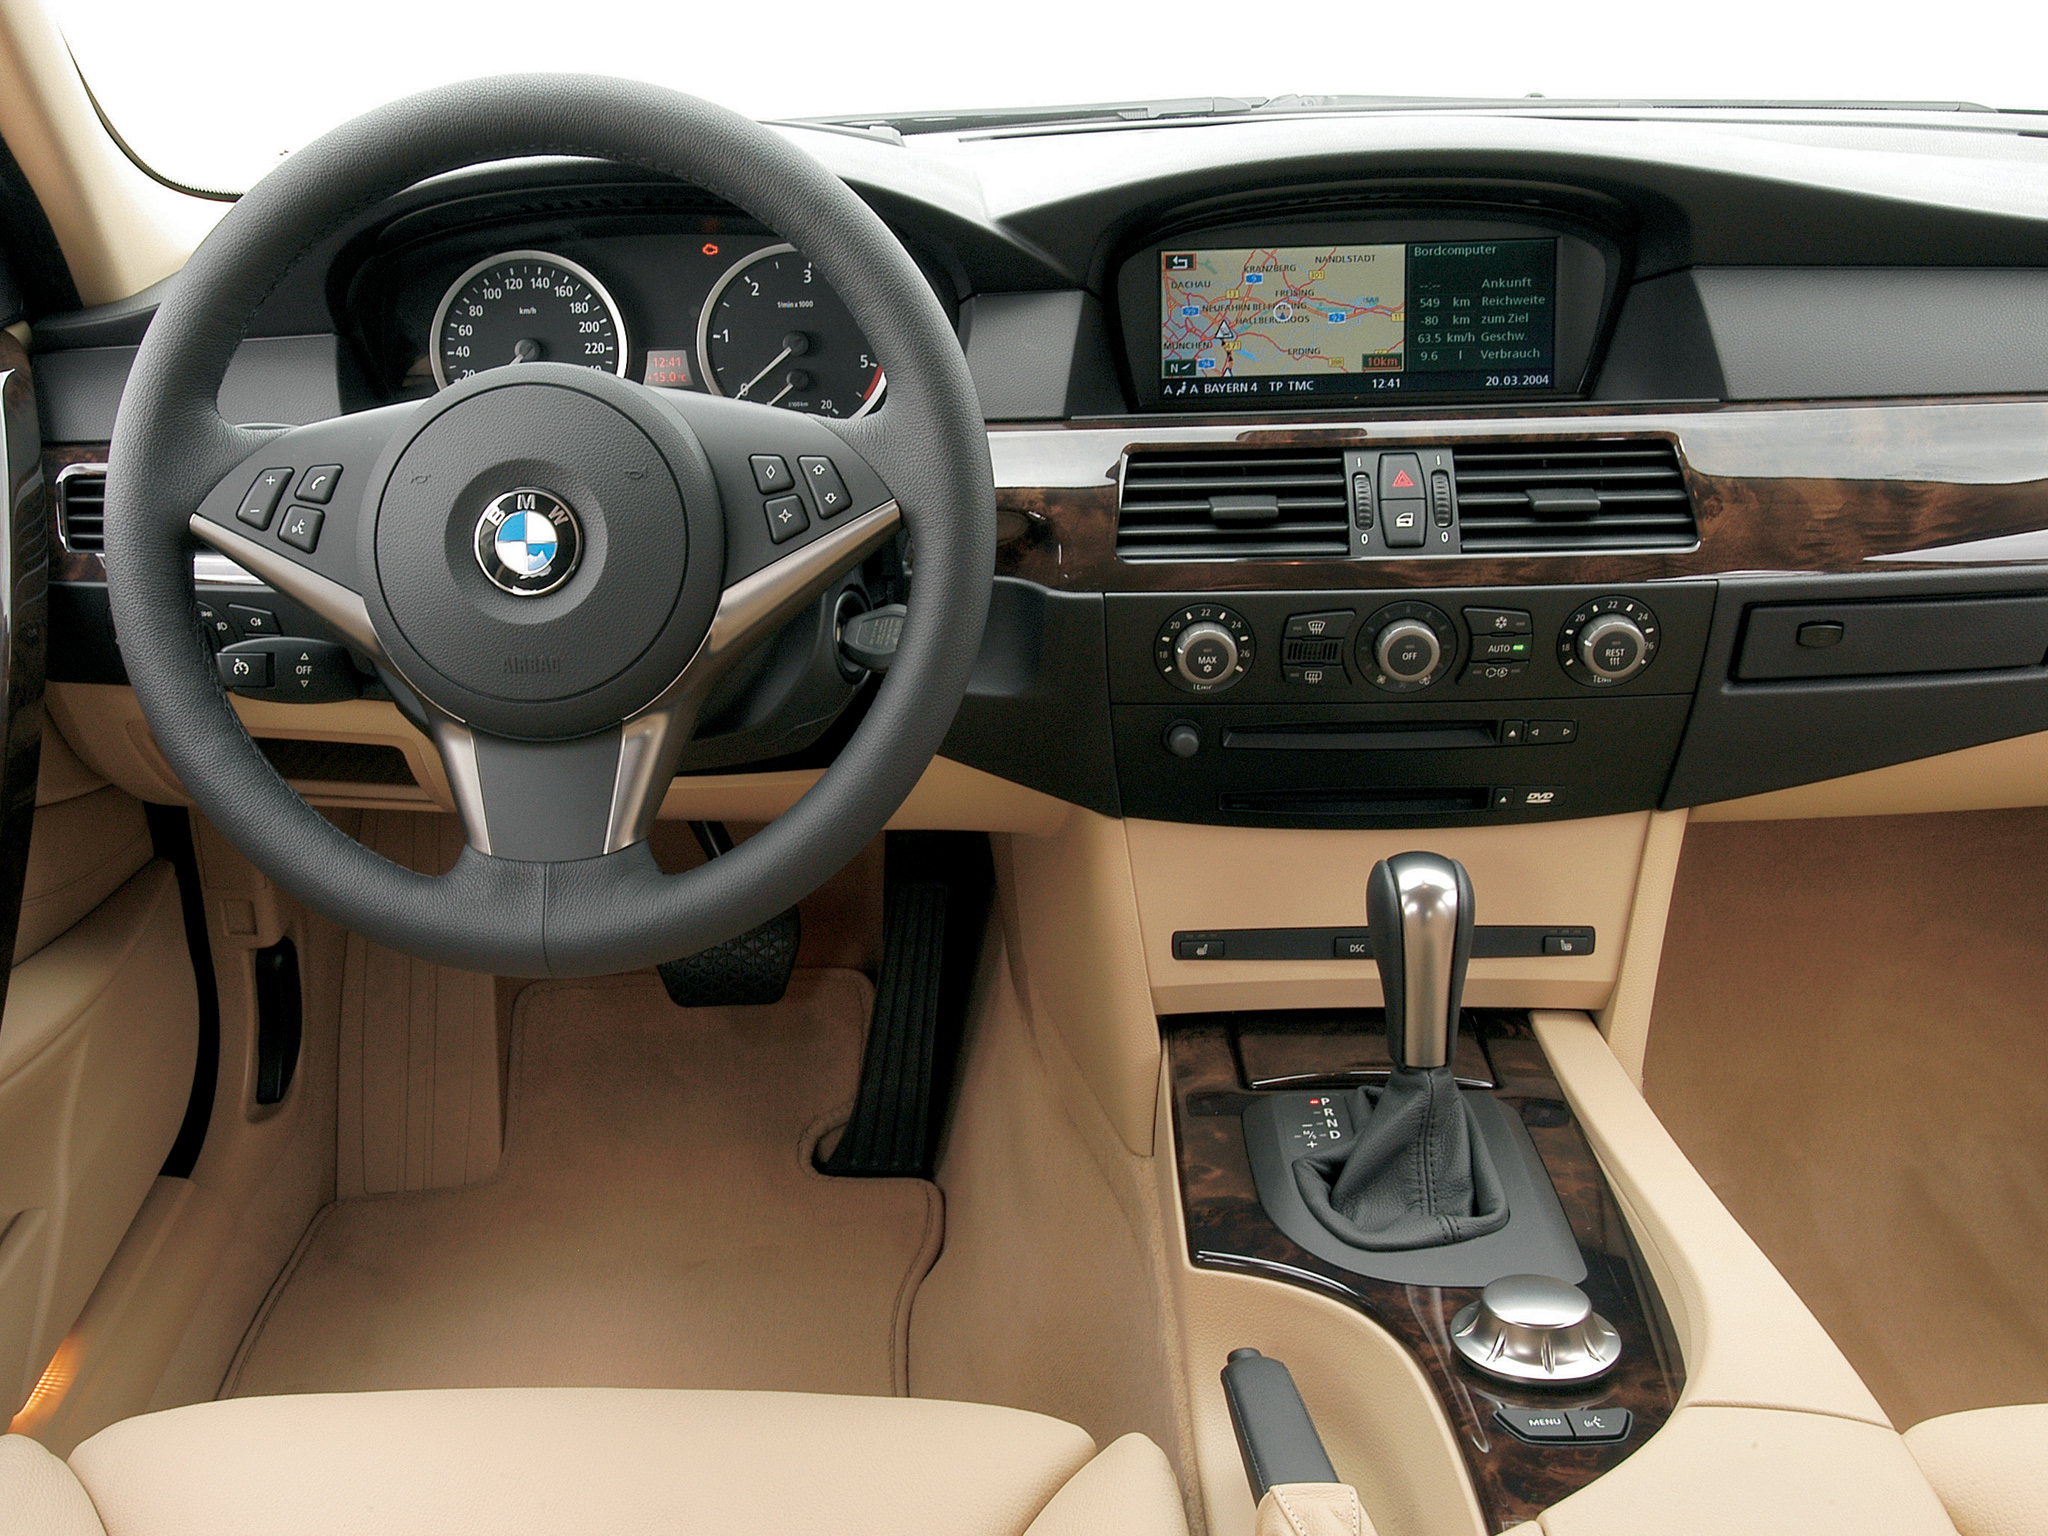 bmw e60 radio coding from japan to uae us eu bmw 5. Black Bedroom Furniture Sets. Home Design Ideas